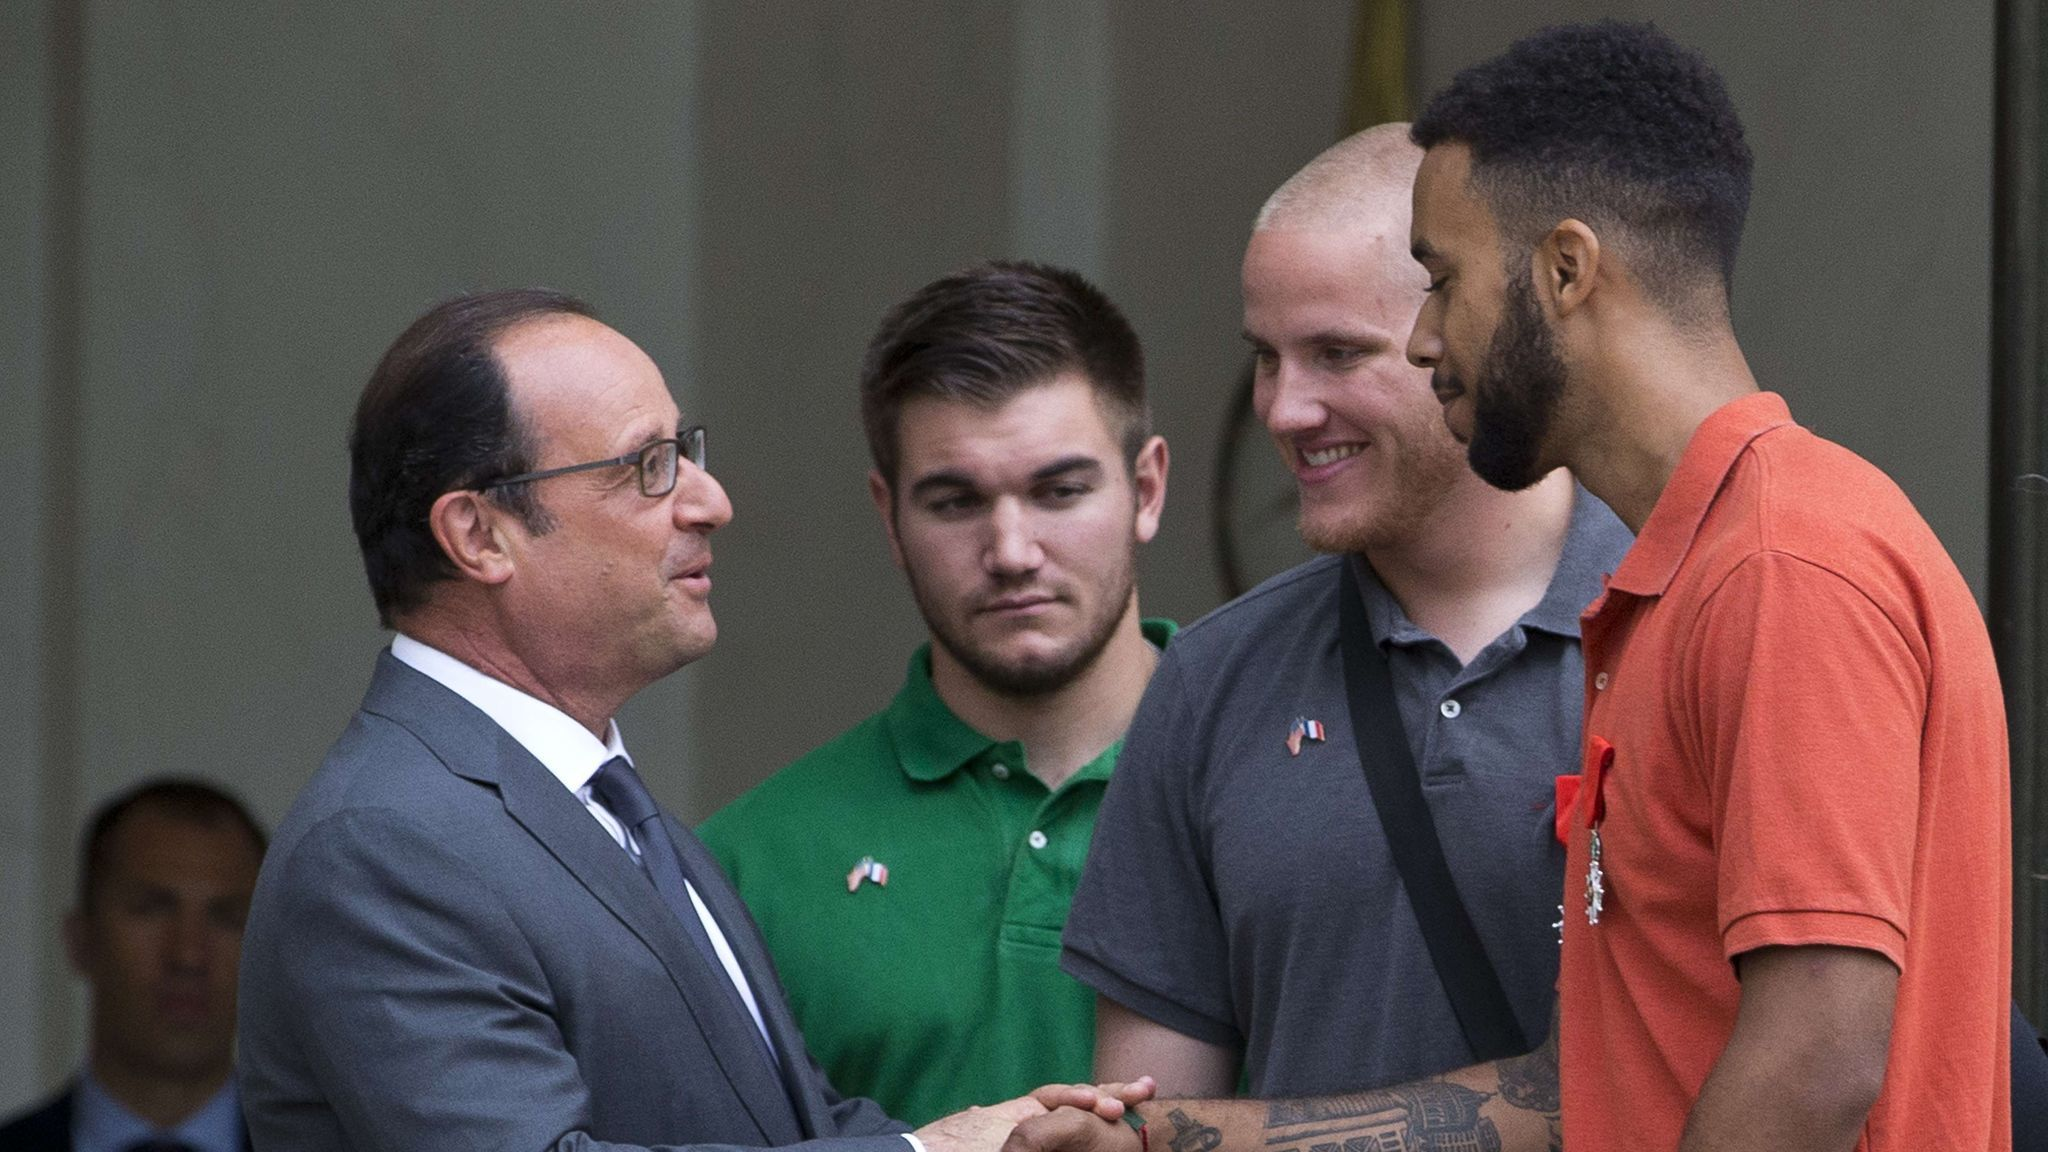 French President Francois Hollande, left, shakes hands with Anthony Sadler next to off-duty U.S. servicemen Spencer Stone, second from right, and Alek Skarlatos, considered heroes for their bravery after they overpowered an attacker on a train from Amsterdam to Paris.